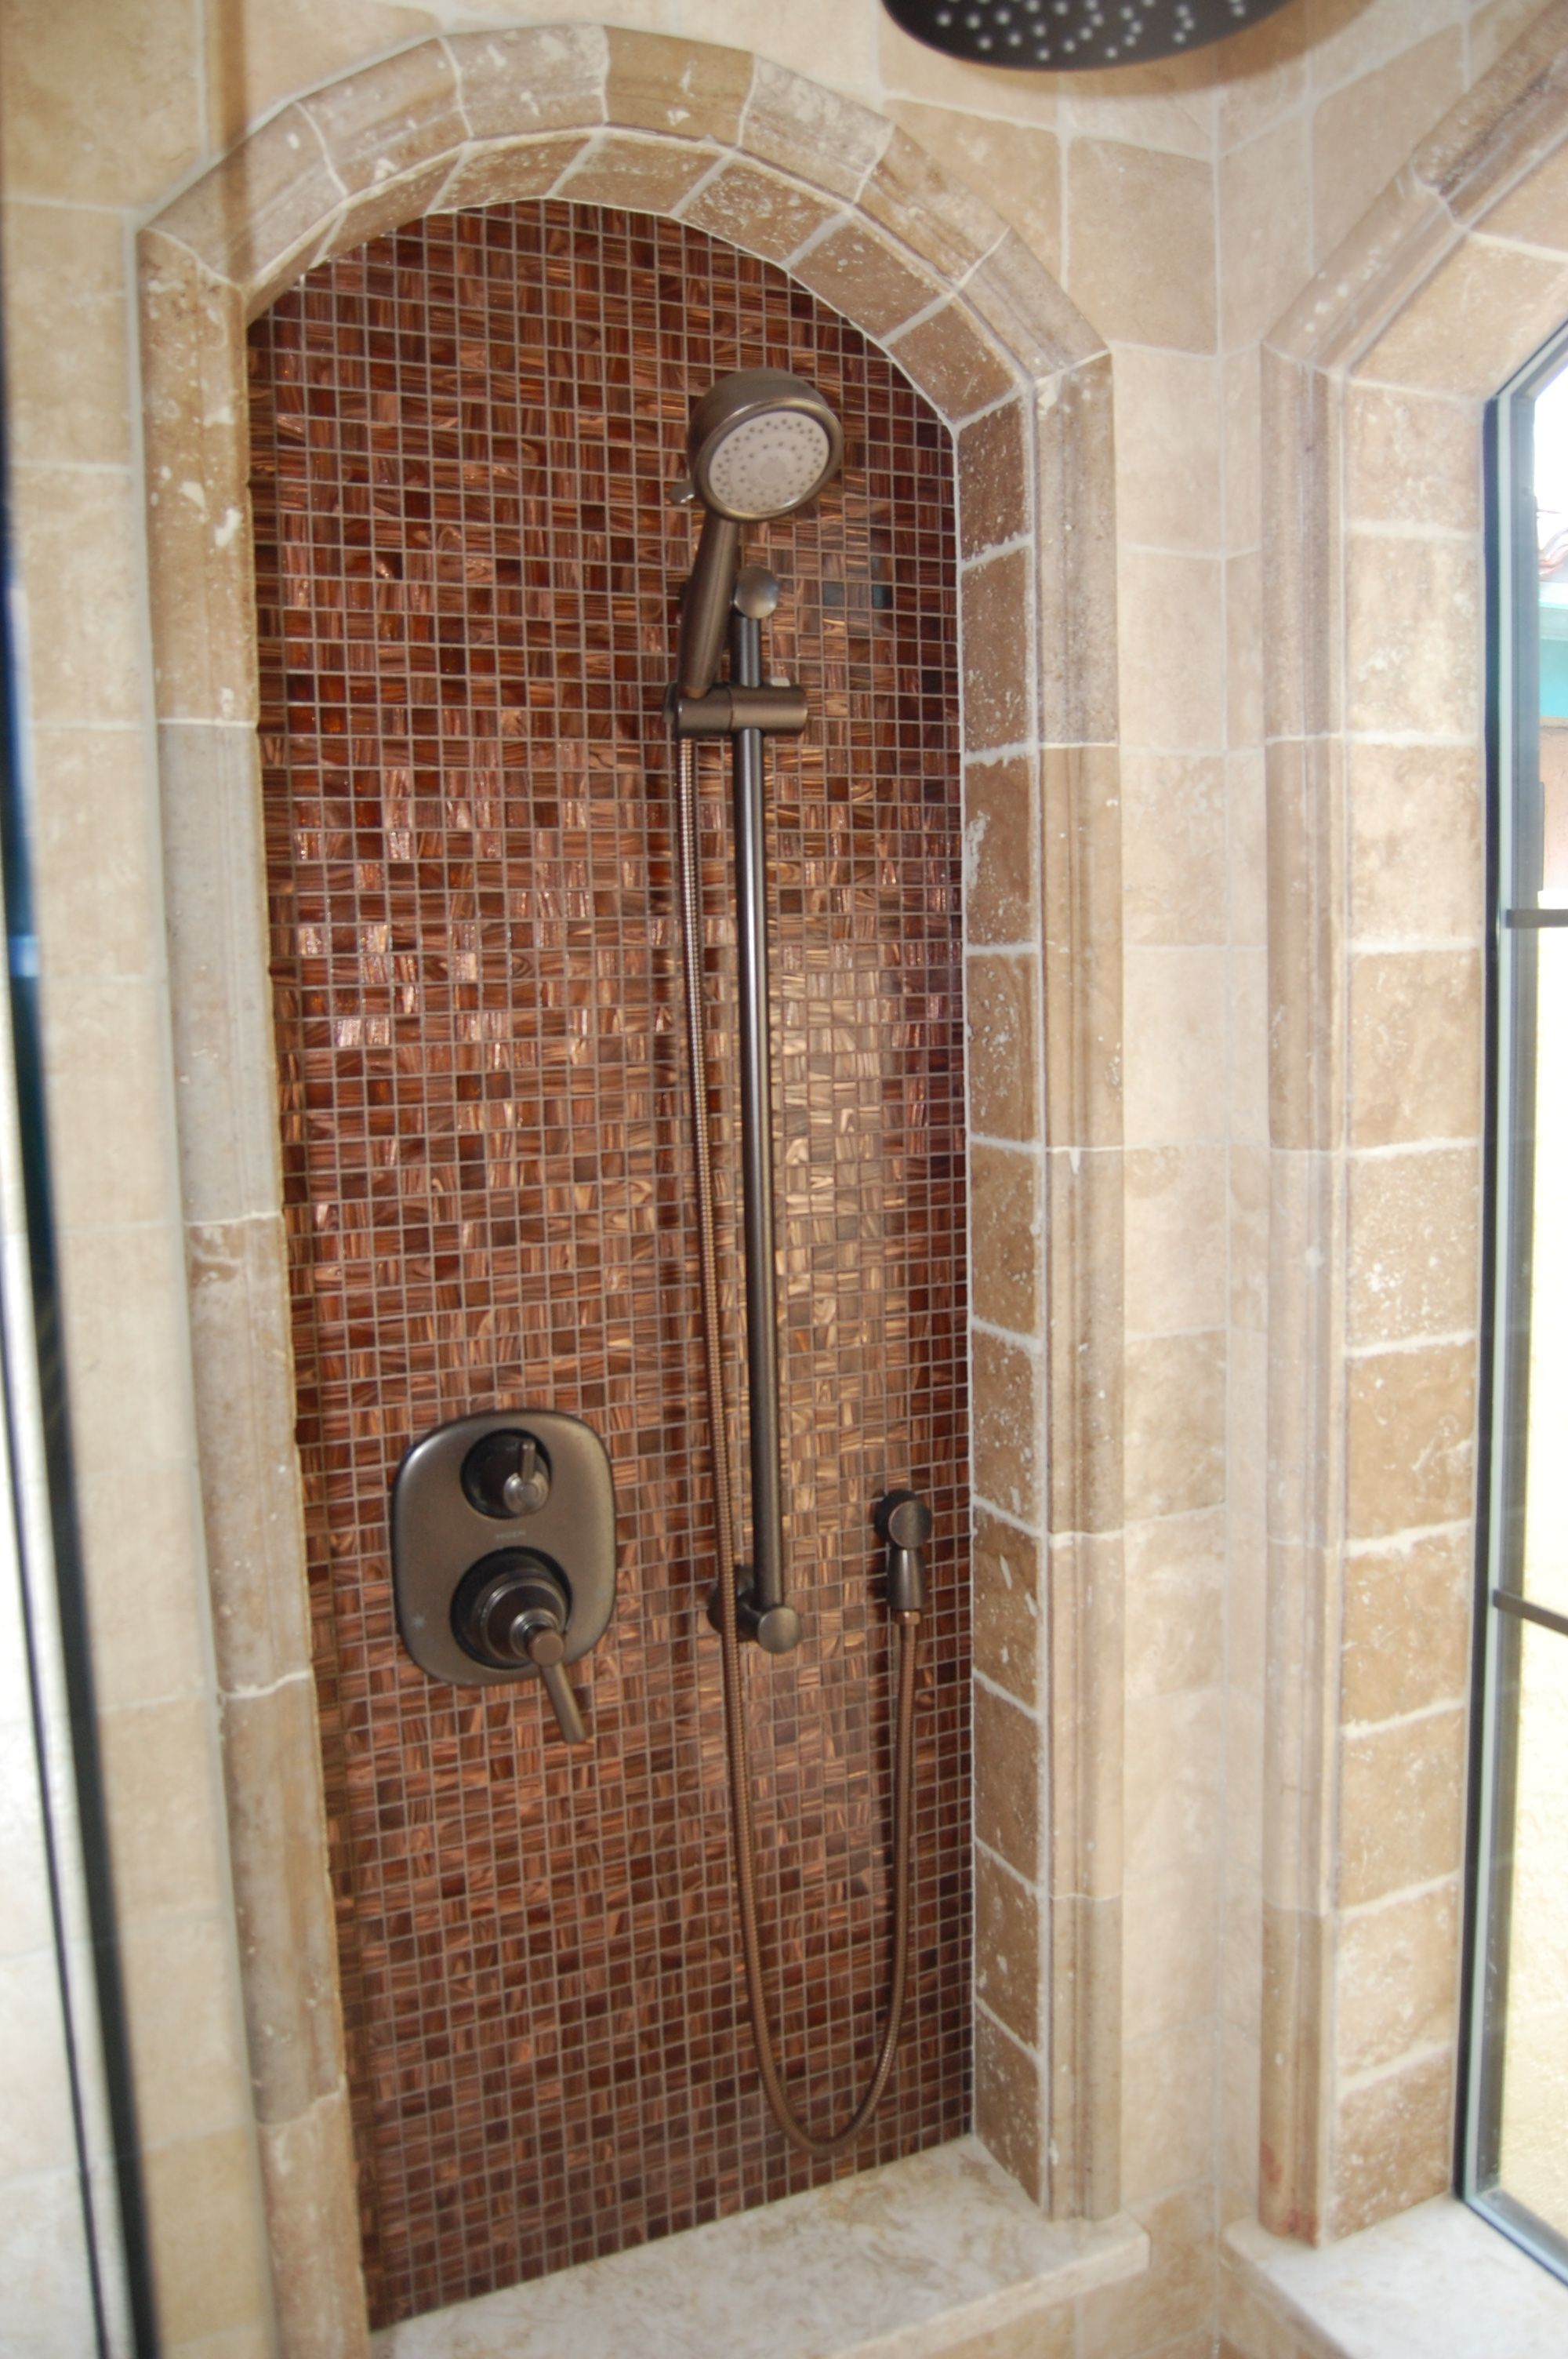 Tile Work And Arch Around Bathroom Shower In 2019